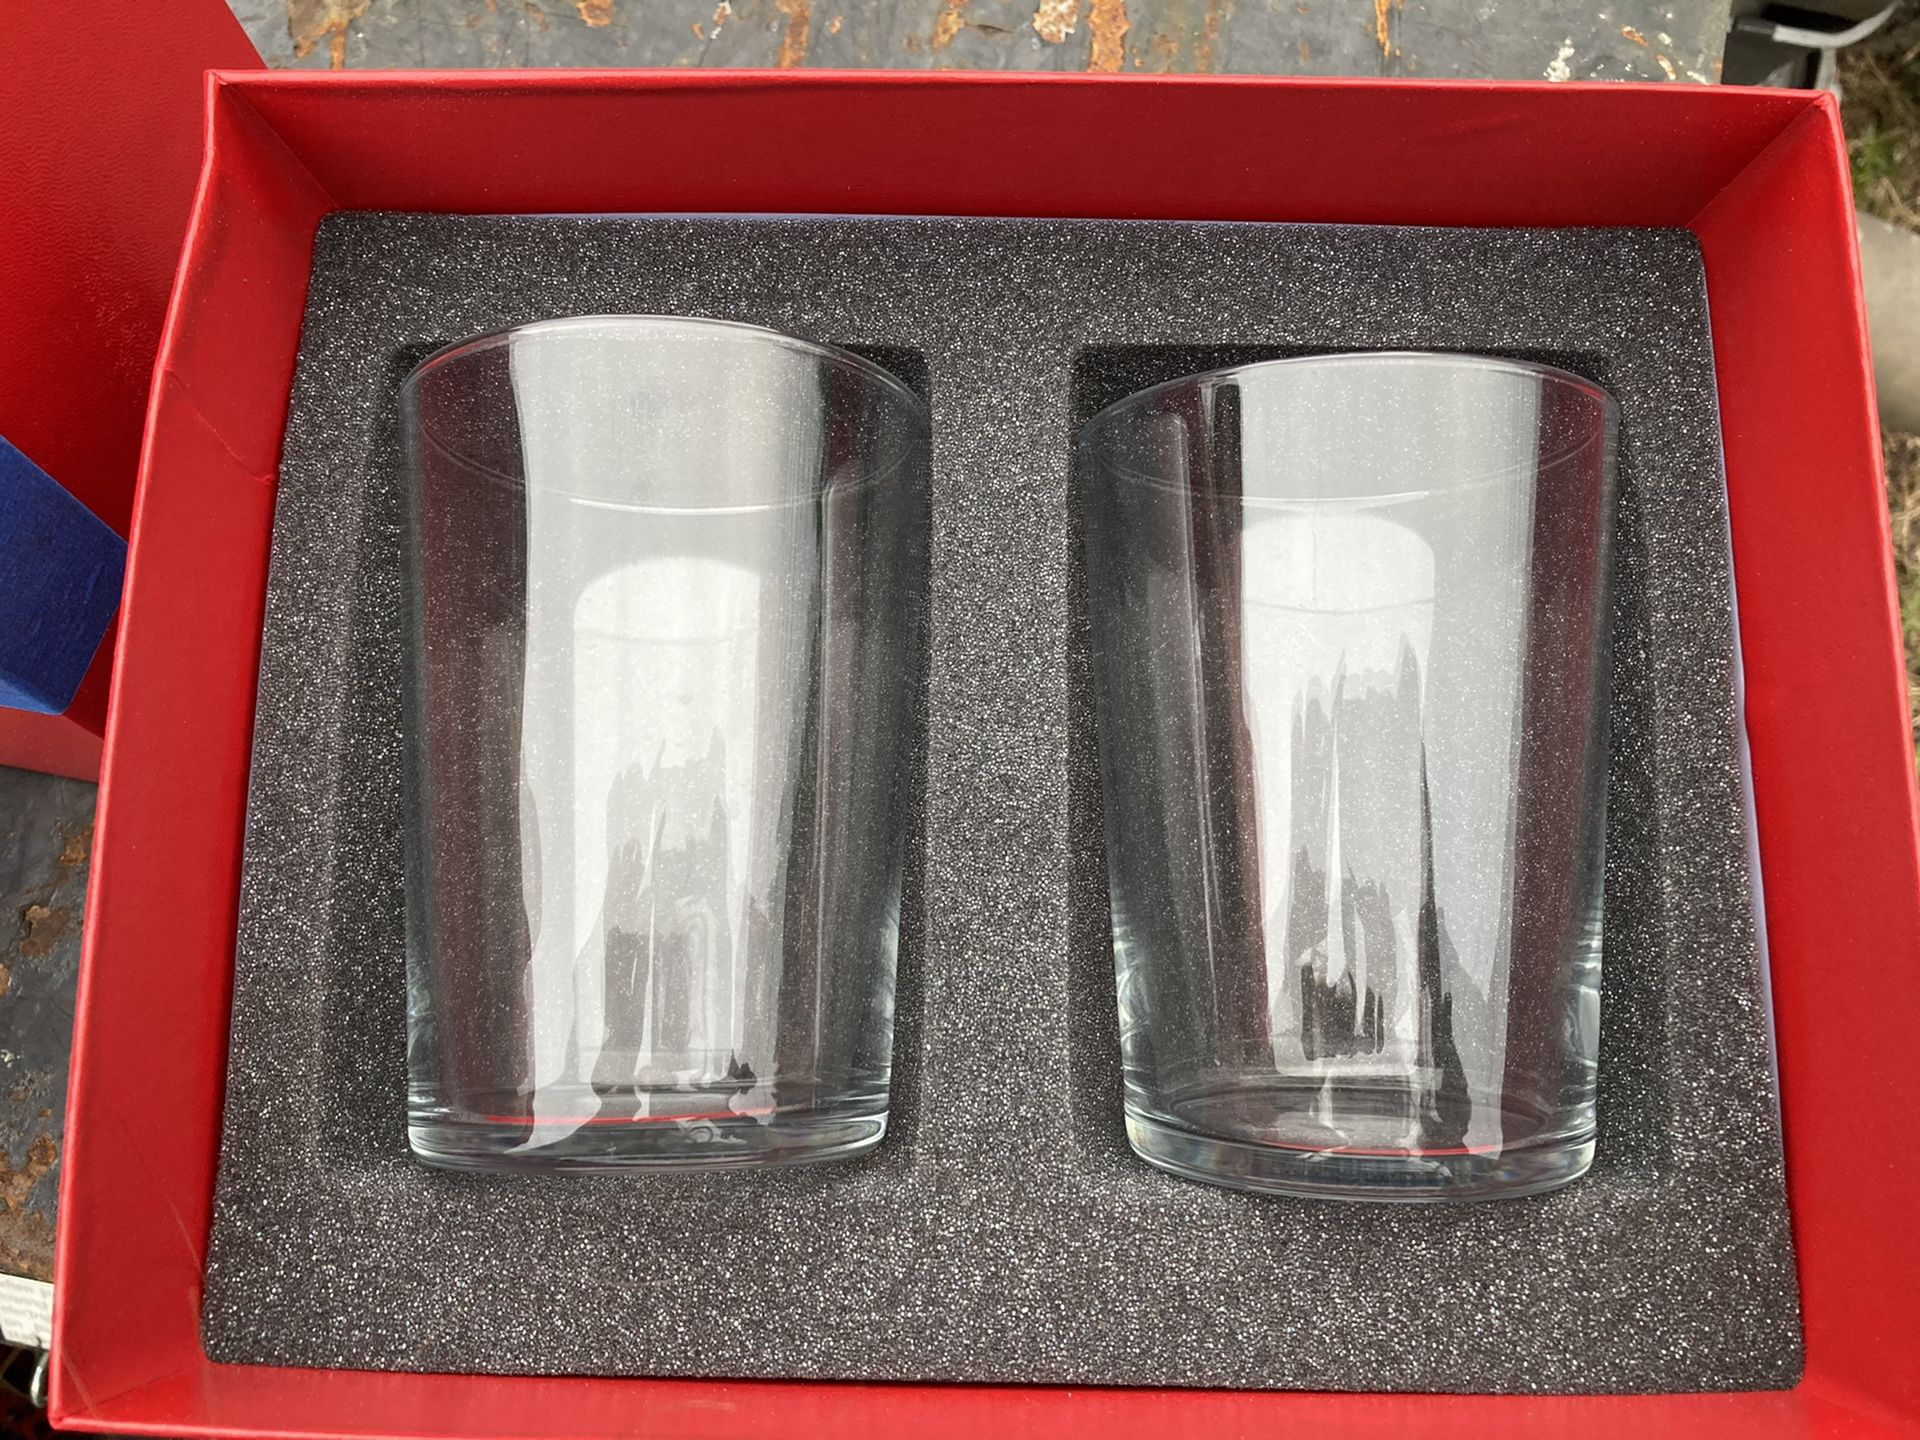 Baccarat glass cups